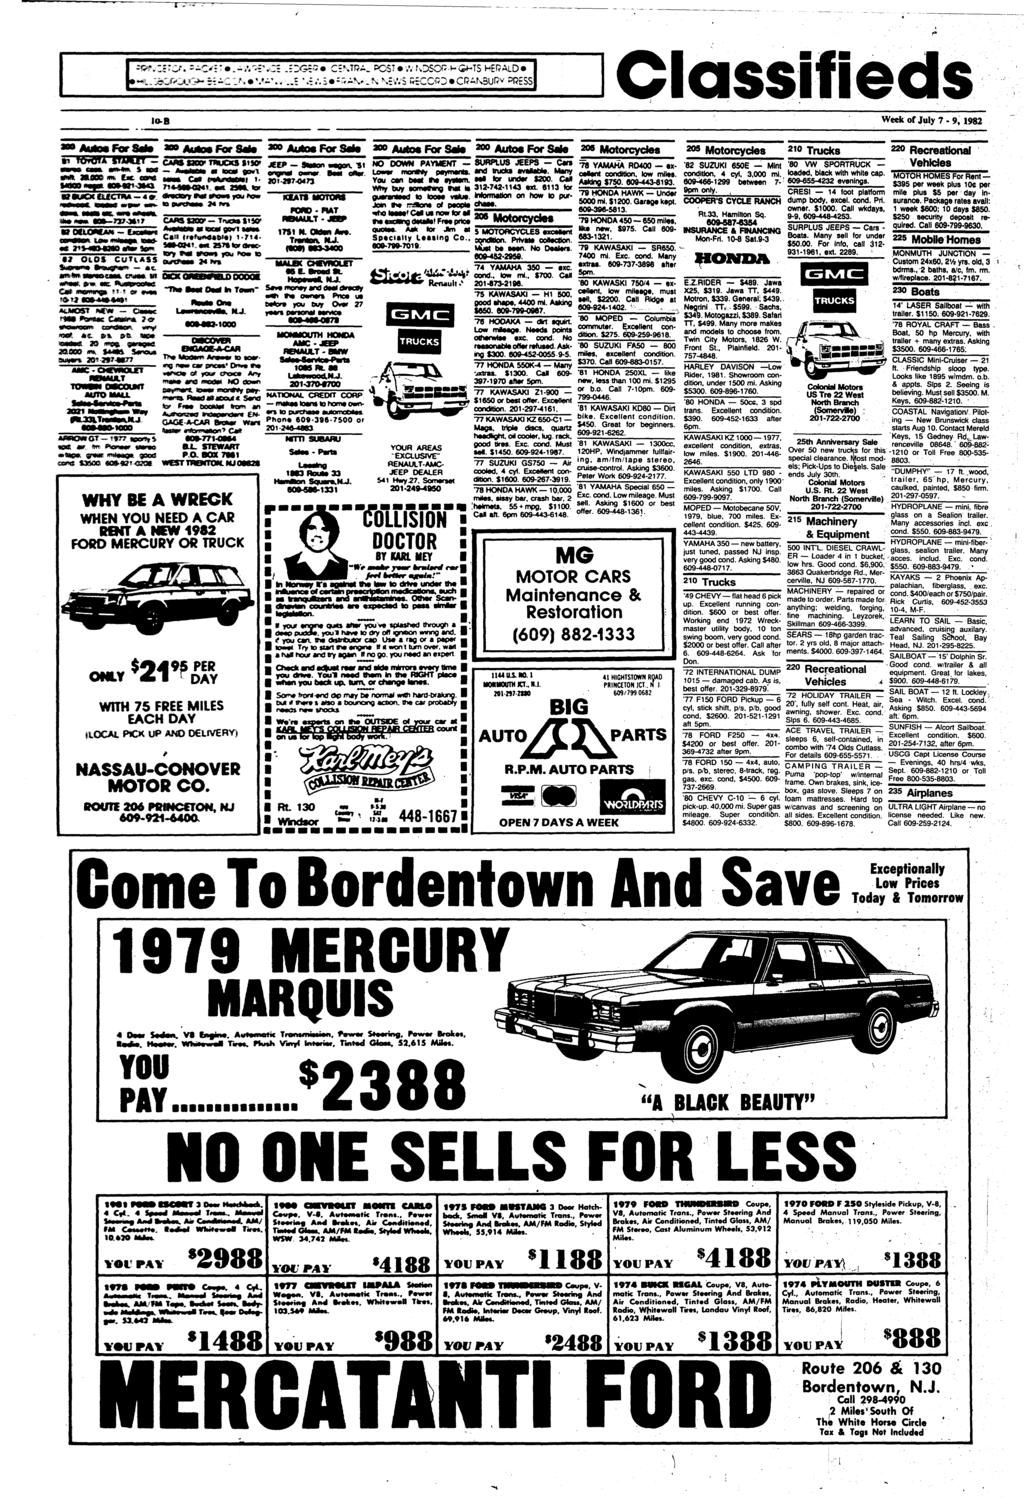 Classifieds 1O-B Week of July 7-9, 1982 For S*»»> Auto* For Sato»> Autos For Sato»» Autos For Sato ** Motorcydes m IOWJ* w*«jrr CM* now meal MO DOWN PAYMENT m, MM. mm, mm.